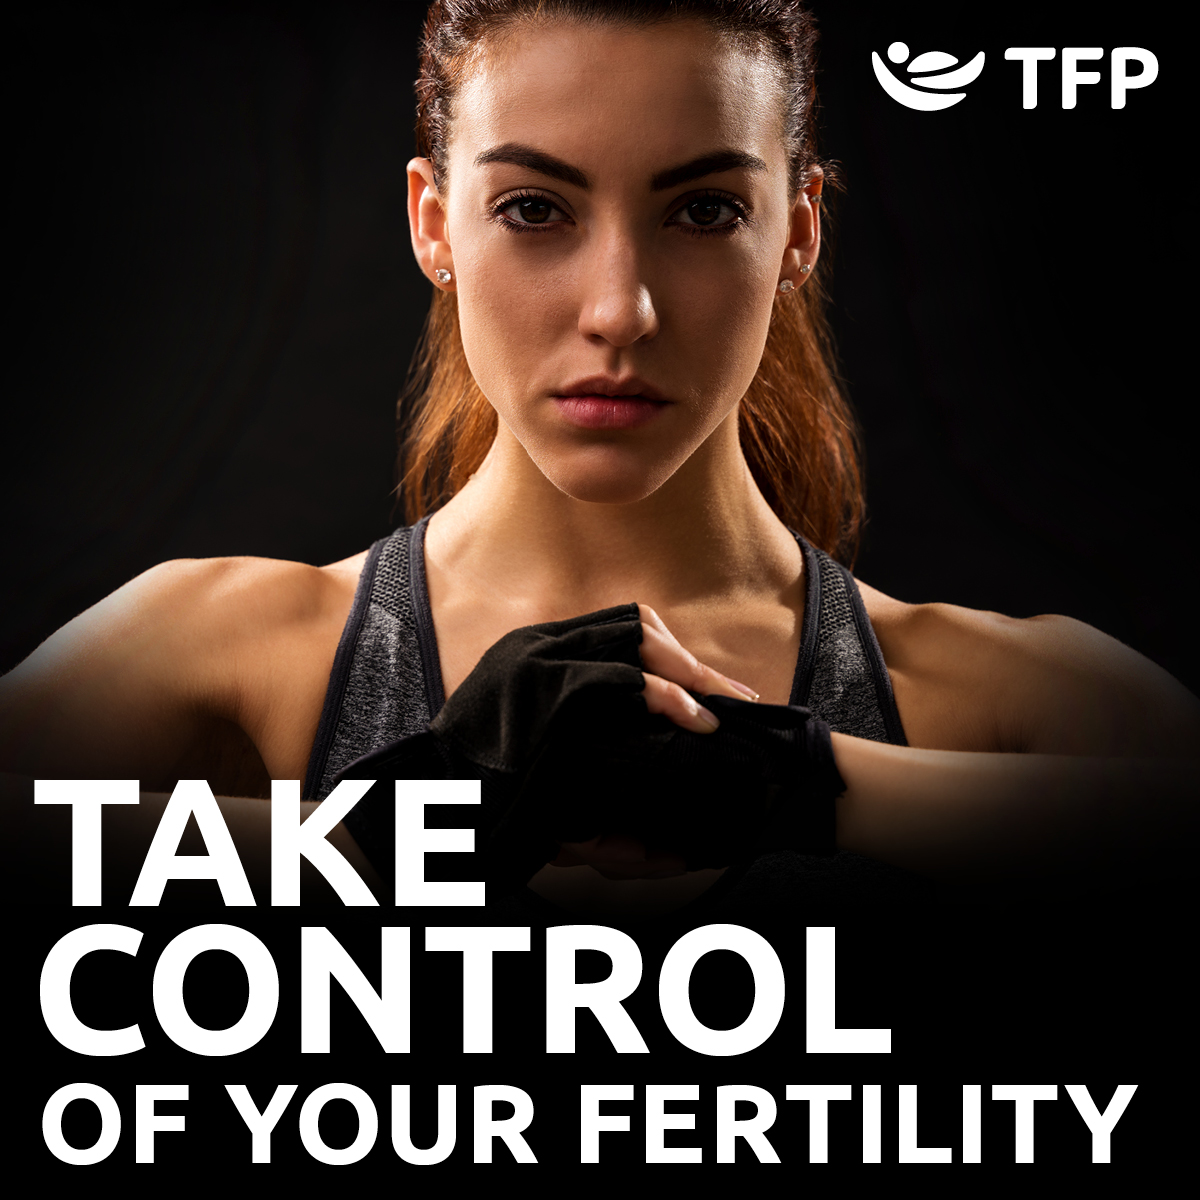 Take Control Of Your Fertility